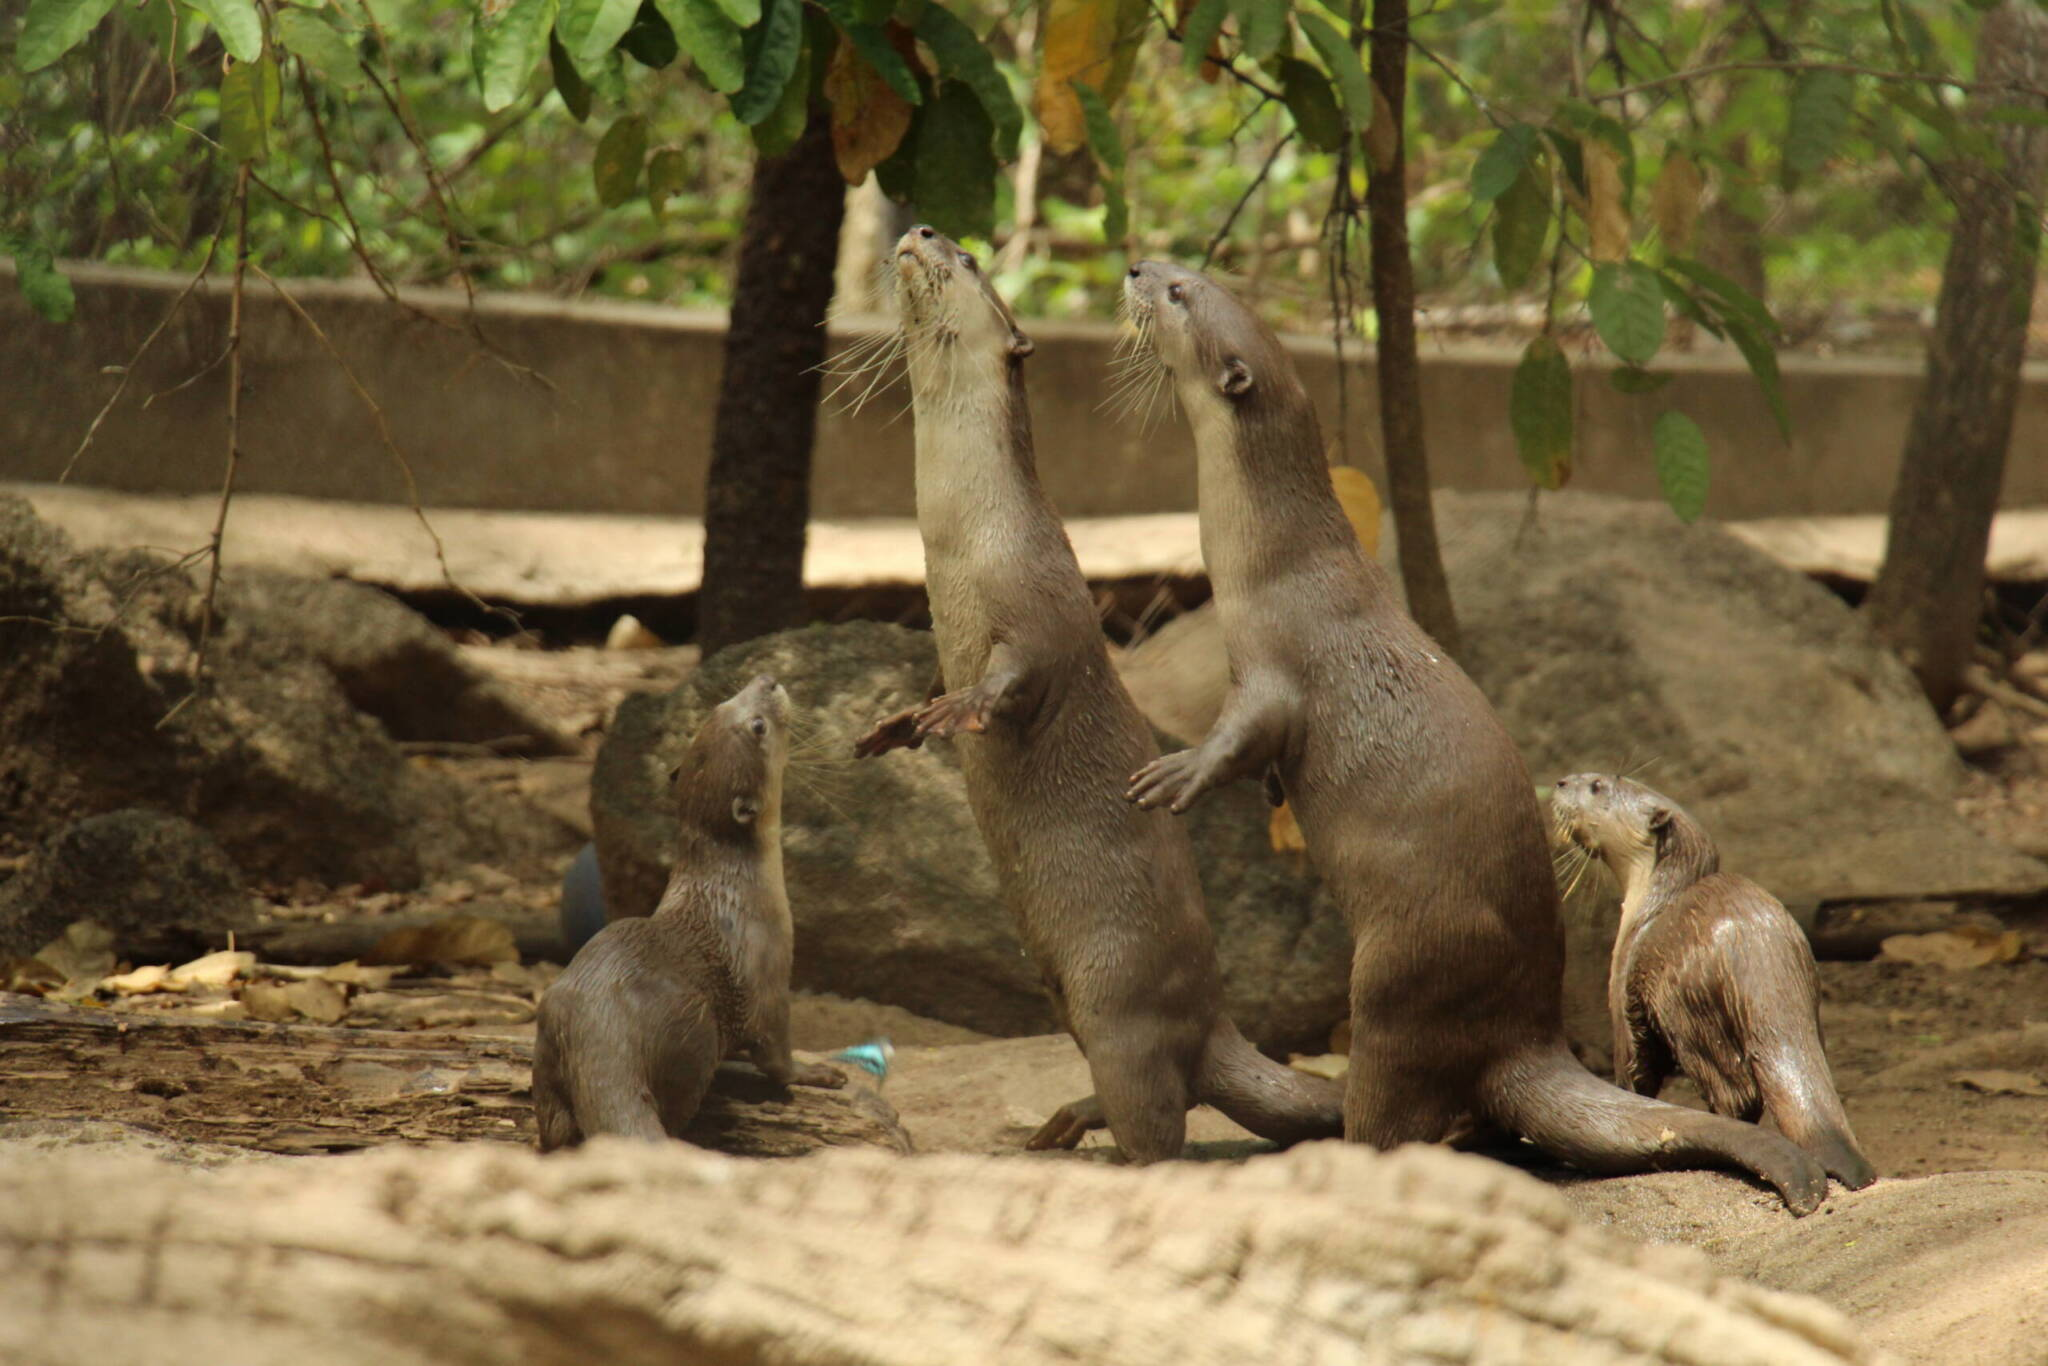 Smooth-coated otter pair released at Angkor Protected Forest, have 2 pups Wildlife Alliance